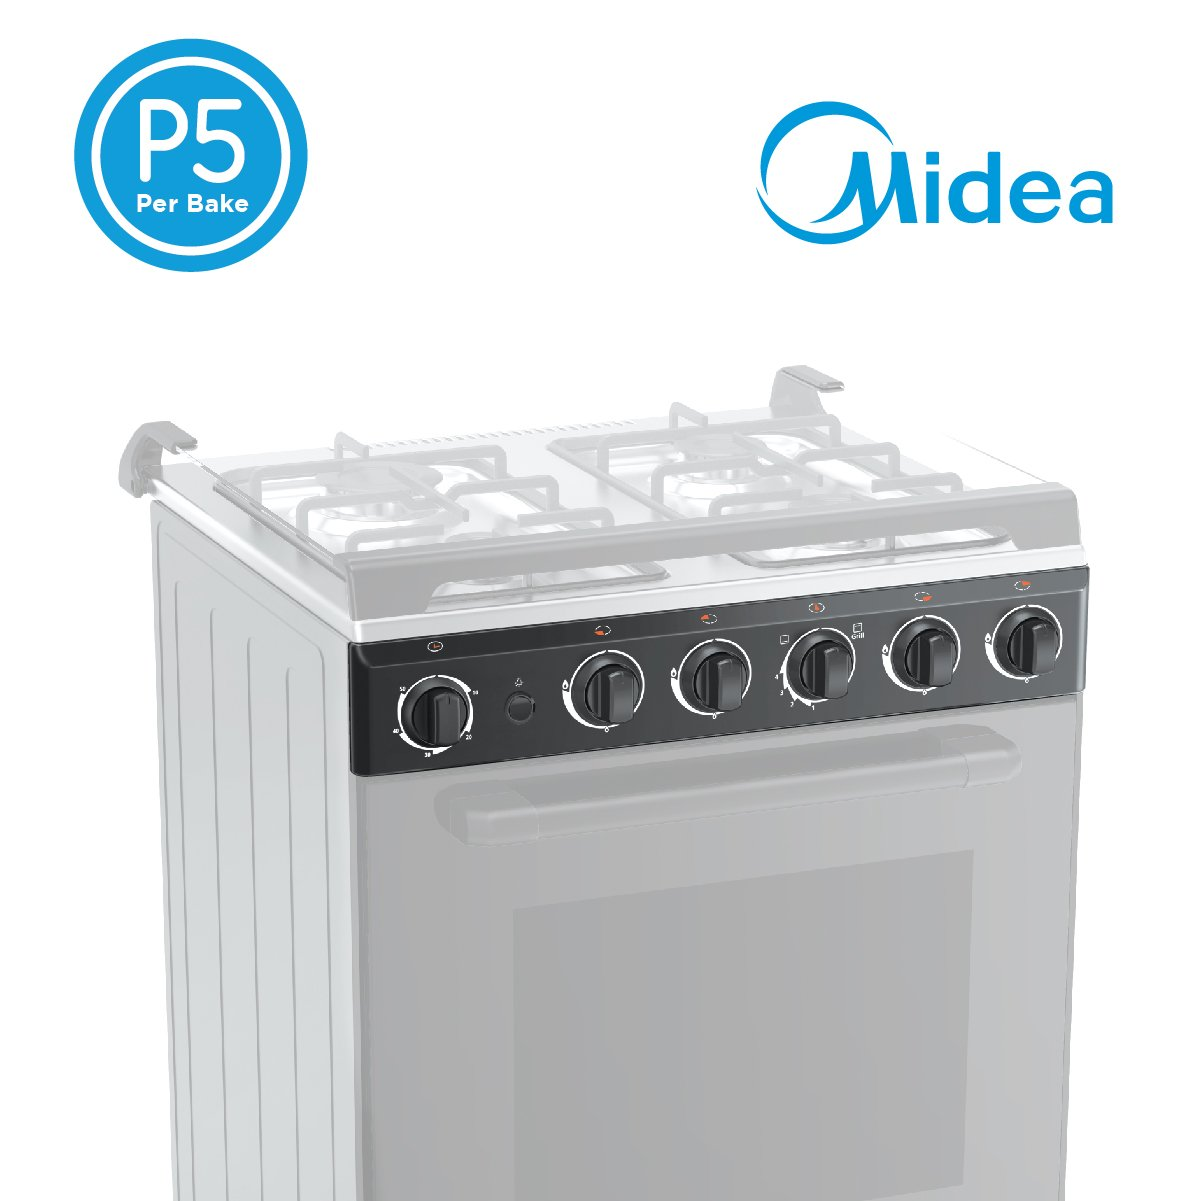 Open Box Unit Midea 60cm Black Gas Range (4 Gas Burners)